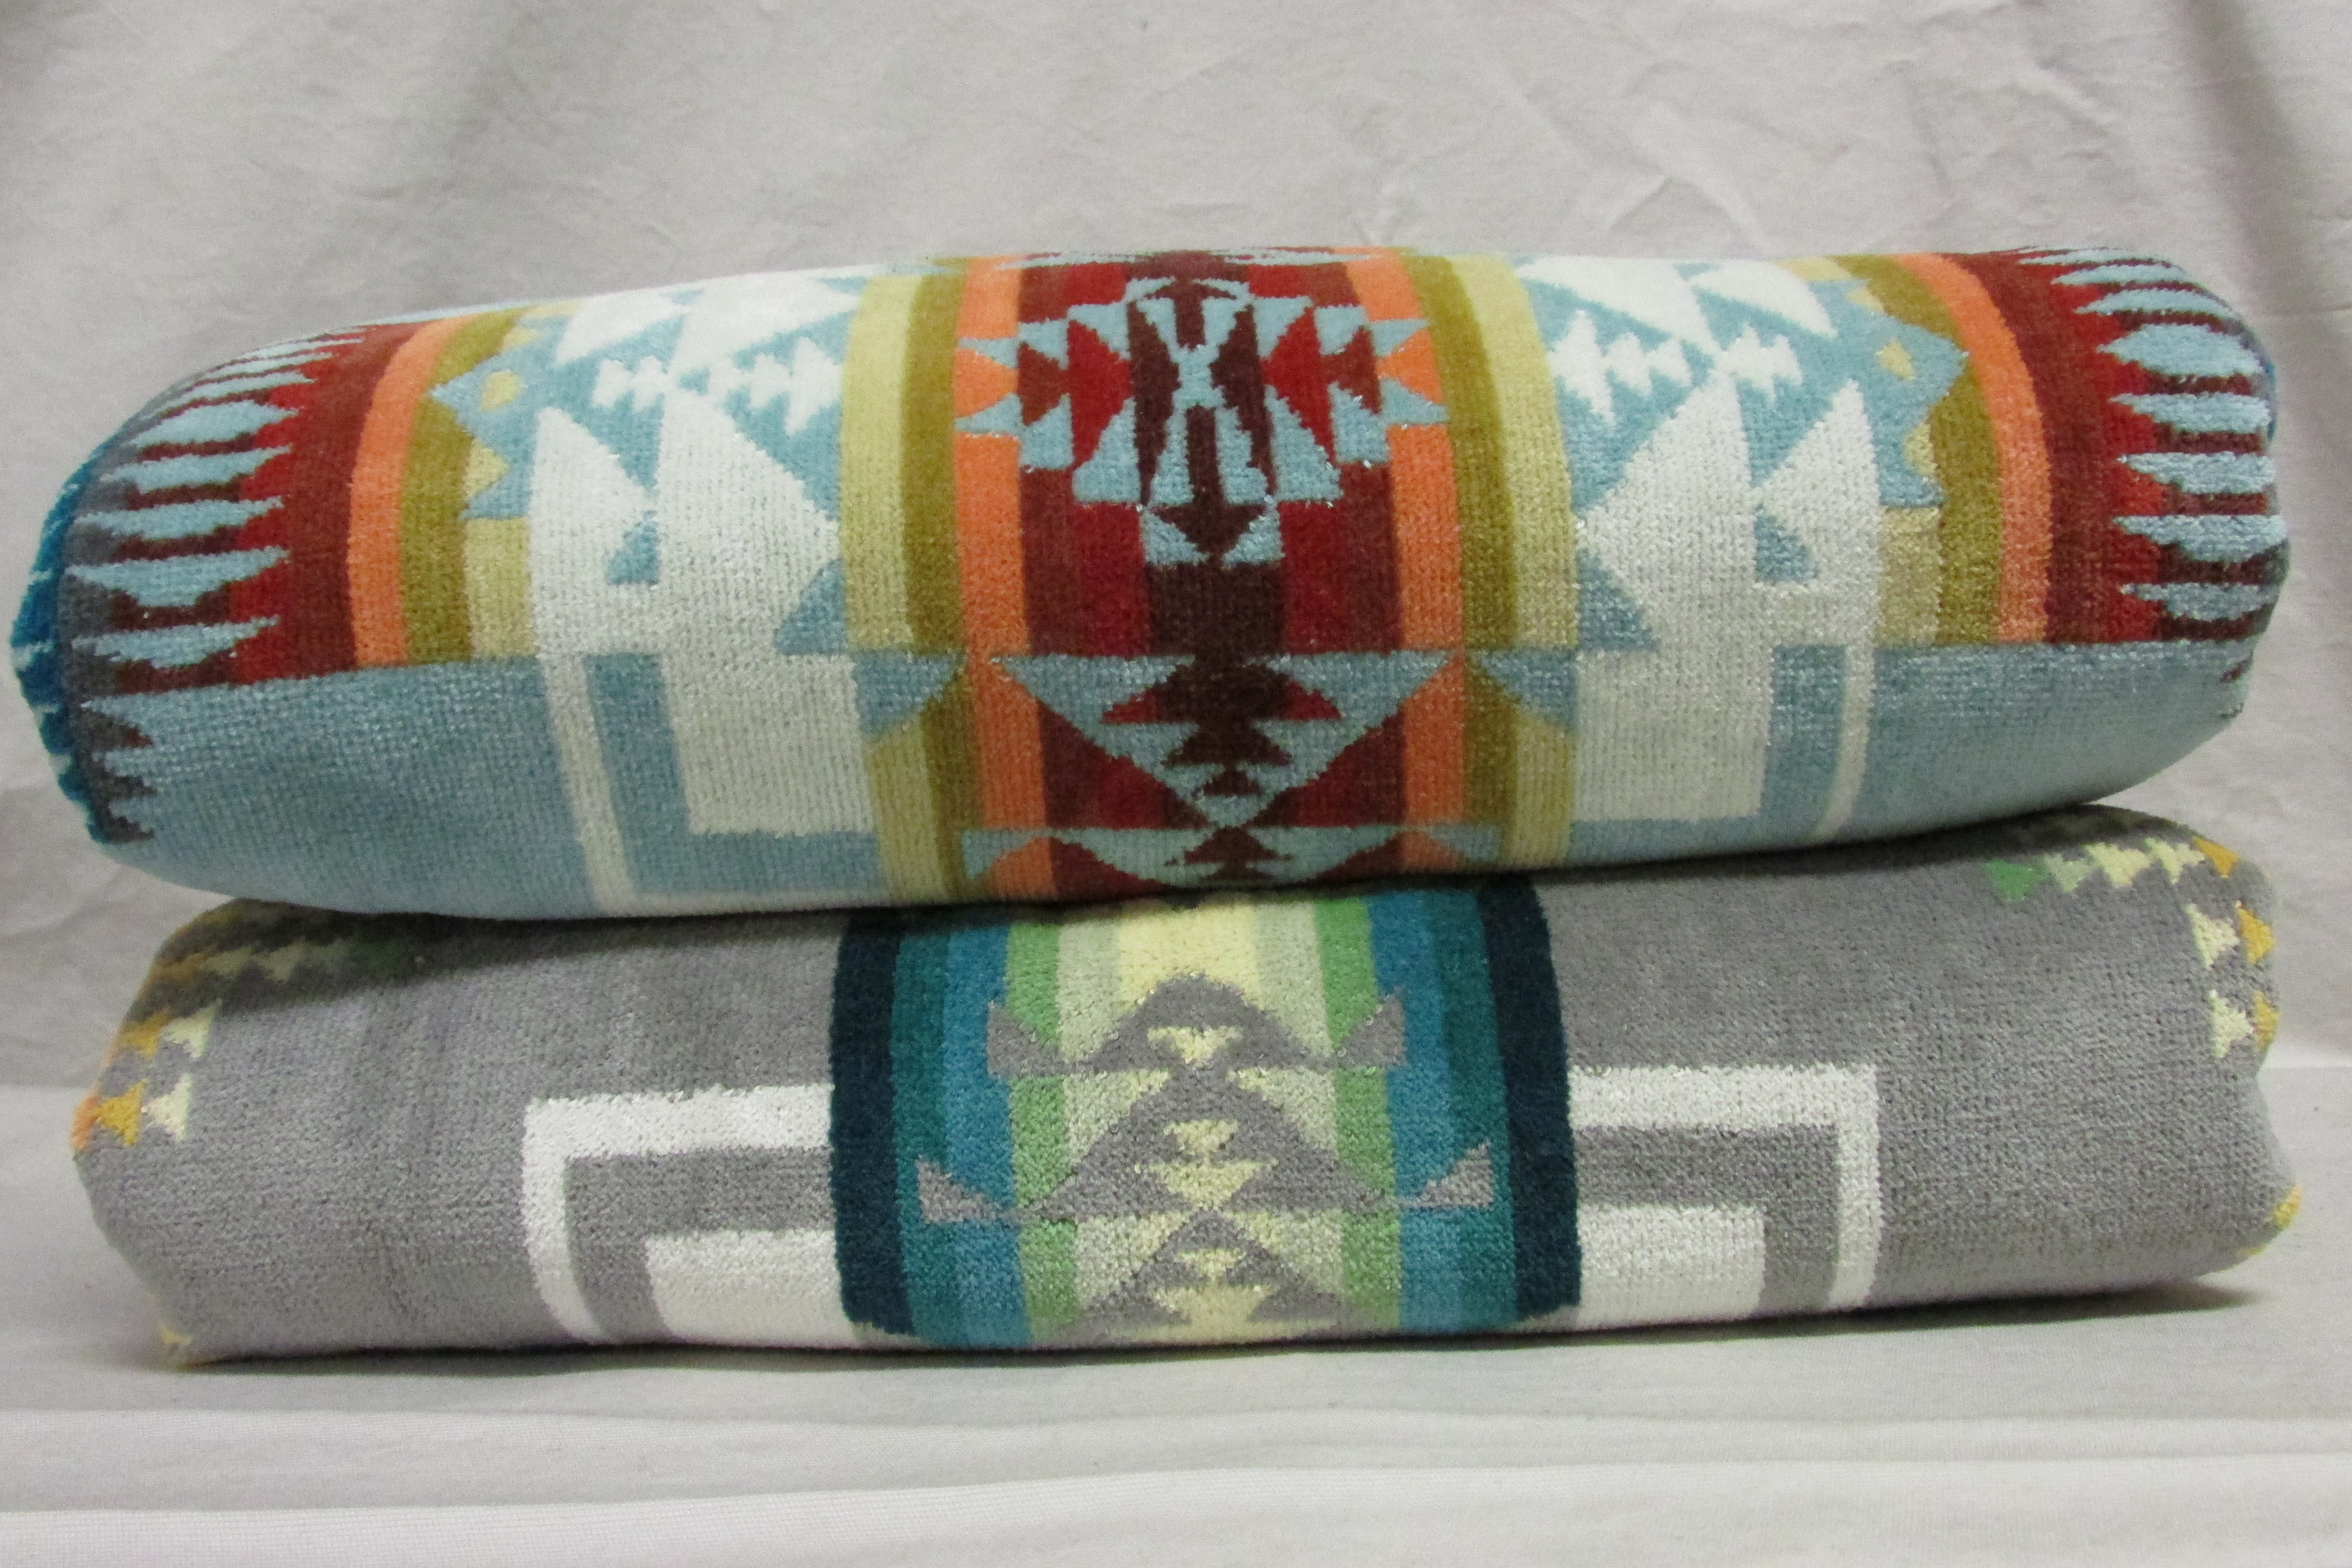 Pendleton beach towels